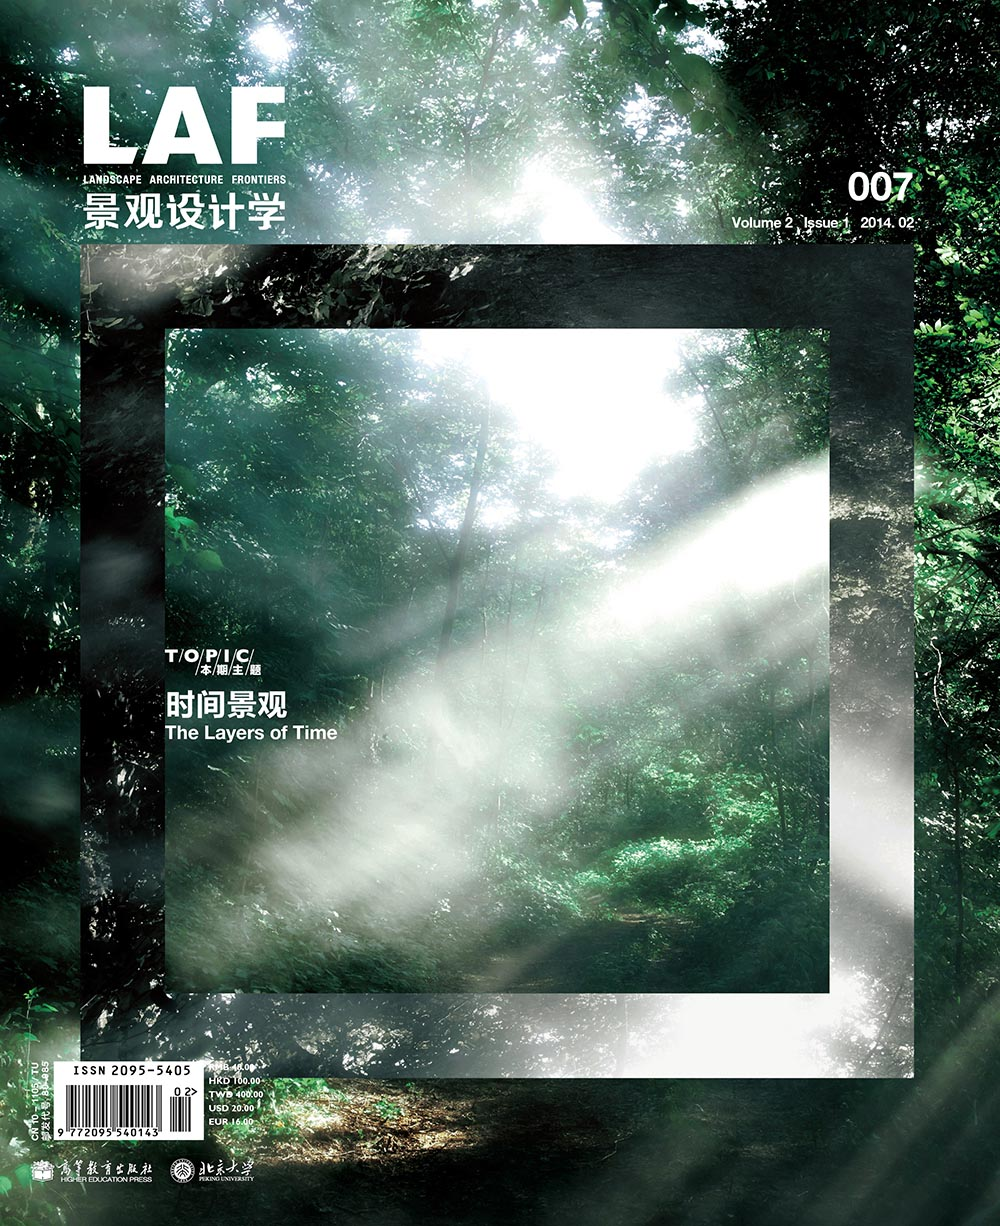 Alps as Process   - Engaging Montane Switzerland as an Operating Urban Ecology   Daia Stutz in:  LAF Landscape Architecture Frontiers, Vol. 2, Issue 1: Layers of Time, 2014